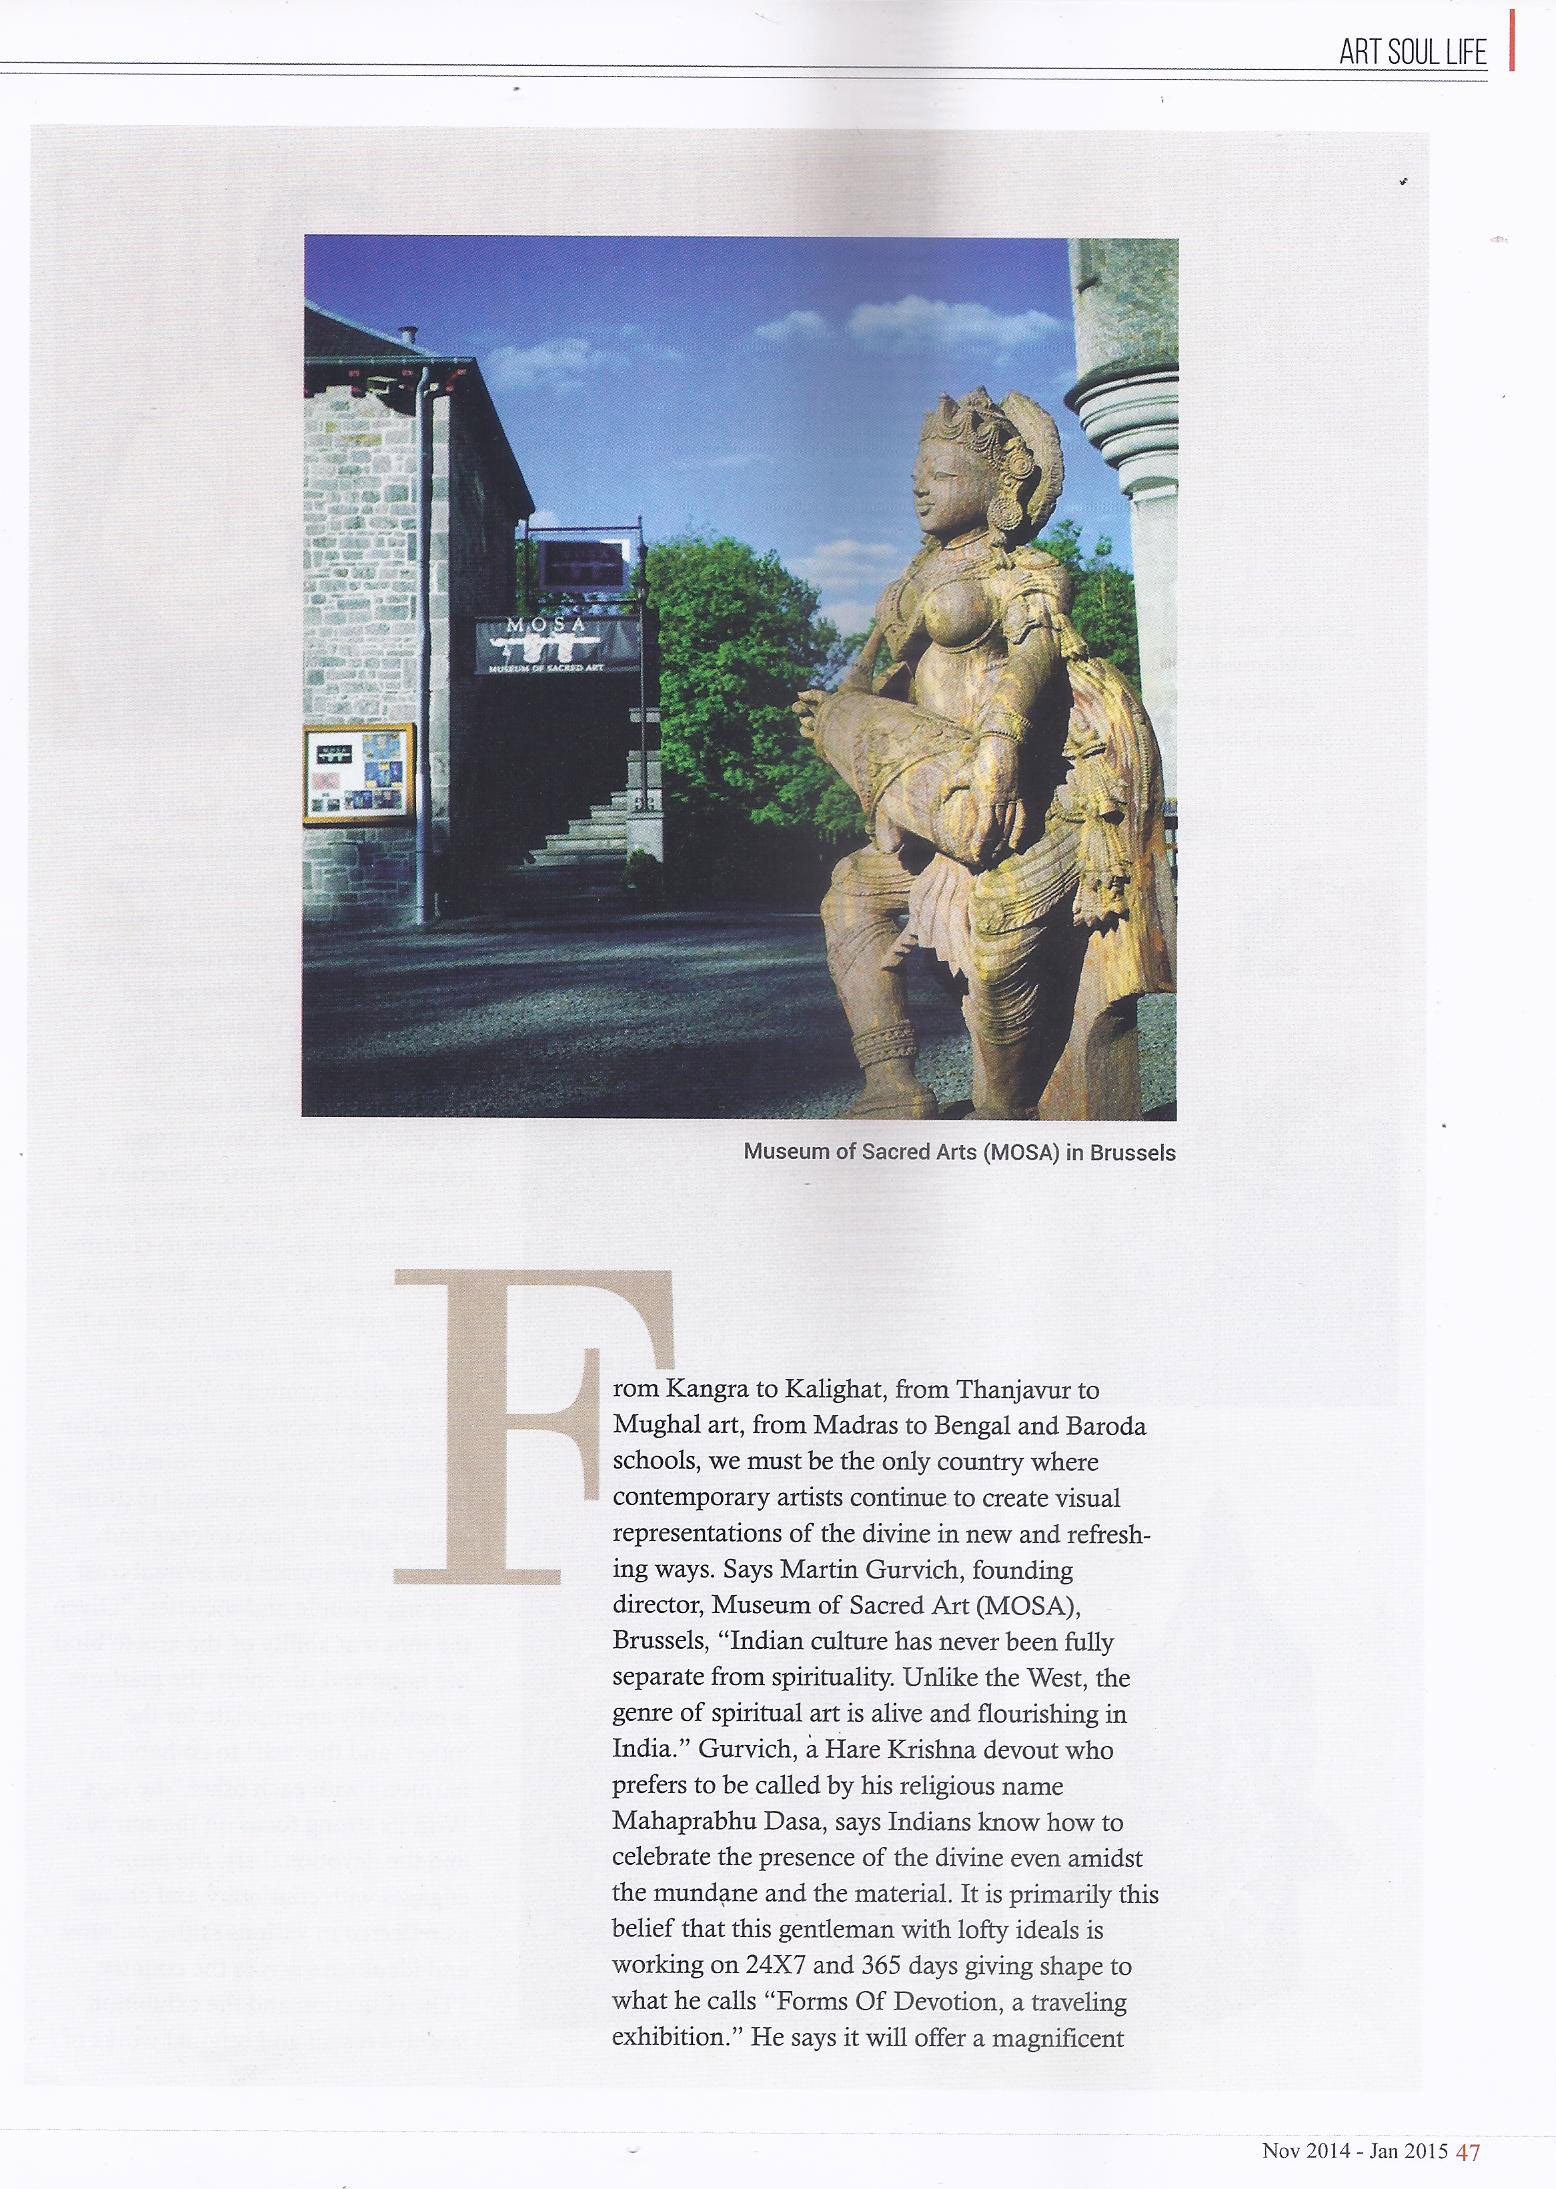 Art Soul Life (National Edition November 2014 - January 2015 Issue)- For the love of god Pg-2